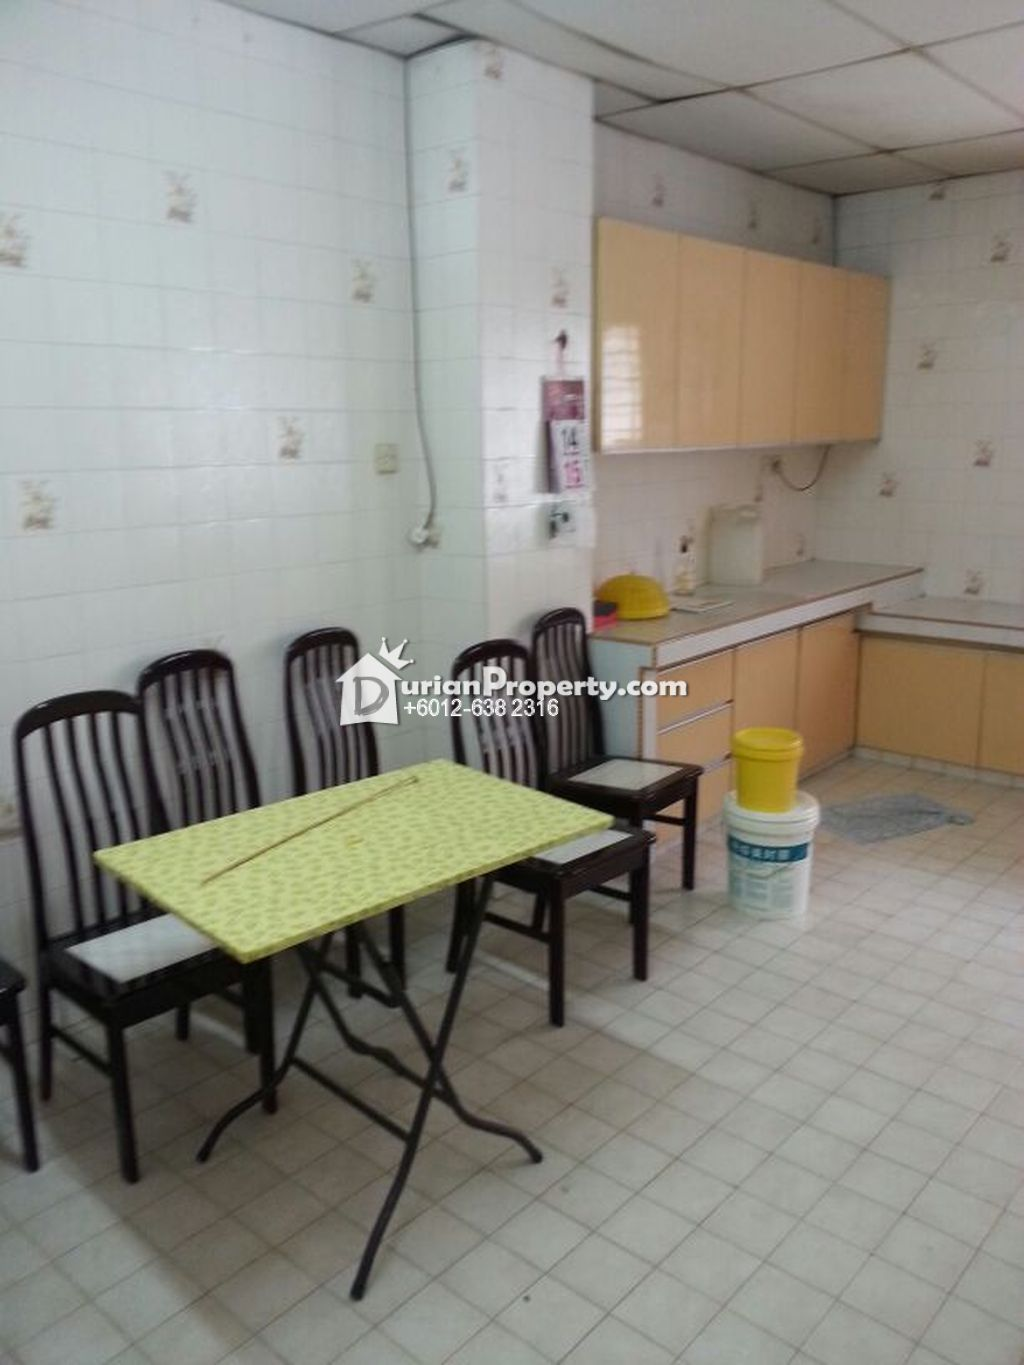 Ravishing Terrace House For Sale At Happy Garden Old Klang Road For Rm  With Inspiring Terrace House For Sale At Happy Garden Old Klang Road With Delightful Tesco Garden Table And Chairs Also Garden Fencing Prices In Addition Little Tikes Garden And Hawksmoor Covent Garden Menu As Well As Marble Garden Zone Additionally Portmeirion Botanic Garden Vase From Durianpropertycommy With   Inspiring Terrace House For Sale At Happy Garden Old Klang Road For Rm  With Delightful Terrace House For Sale At Happy Garden Old Klang Road And Ravishing Tesco Garden Table And Chairs Also Garden Fencing Prices In Addition Little Tikes Garden From Durianpropertycommy